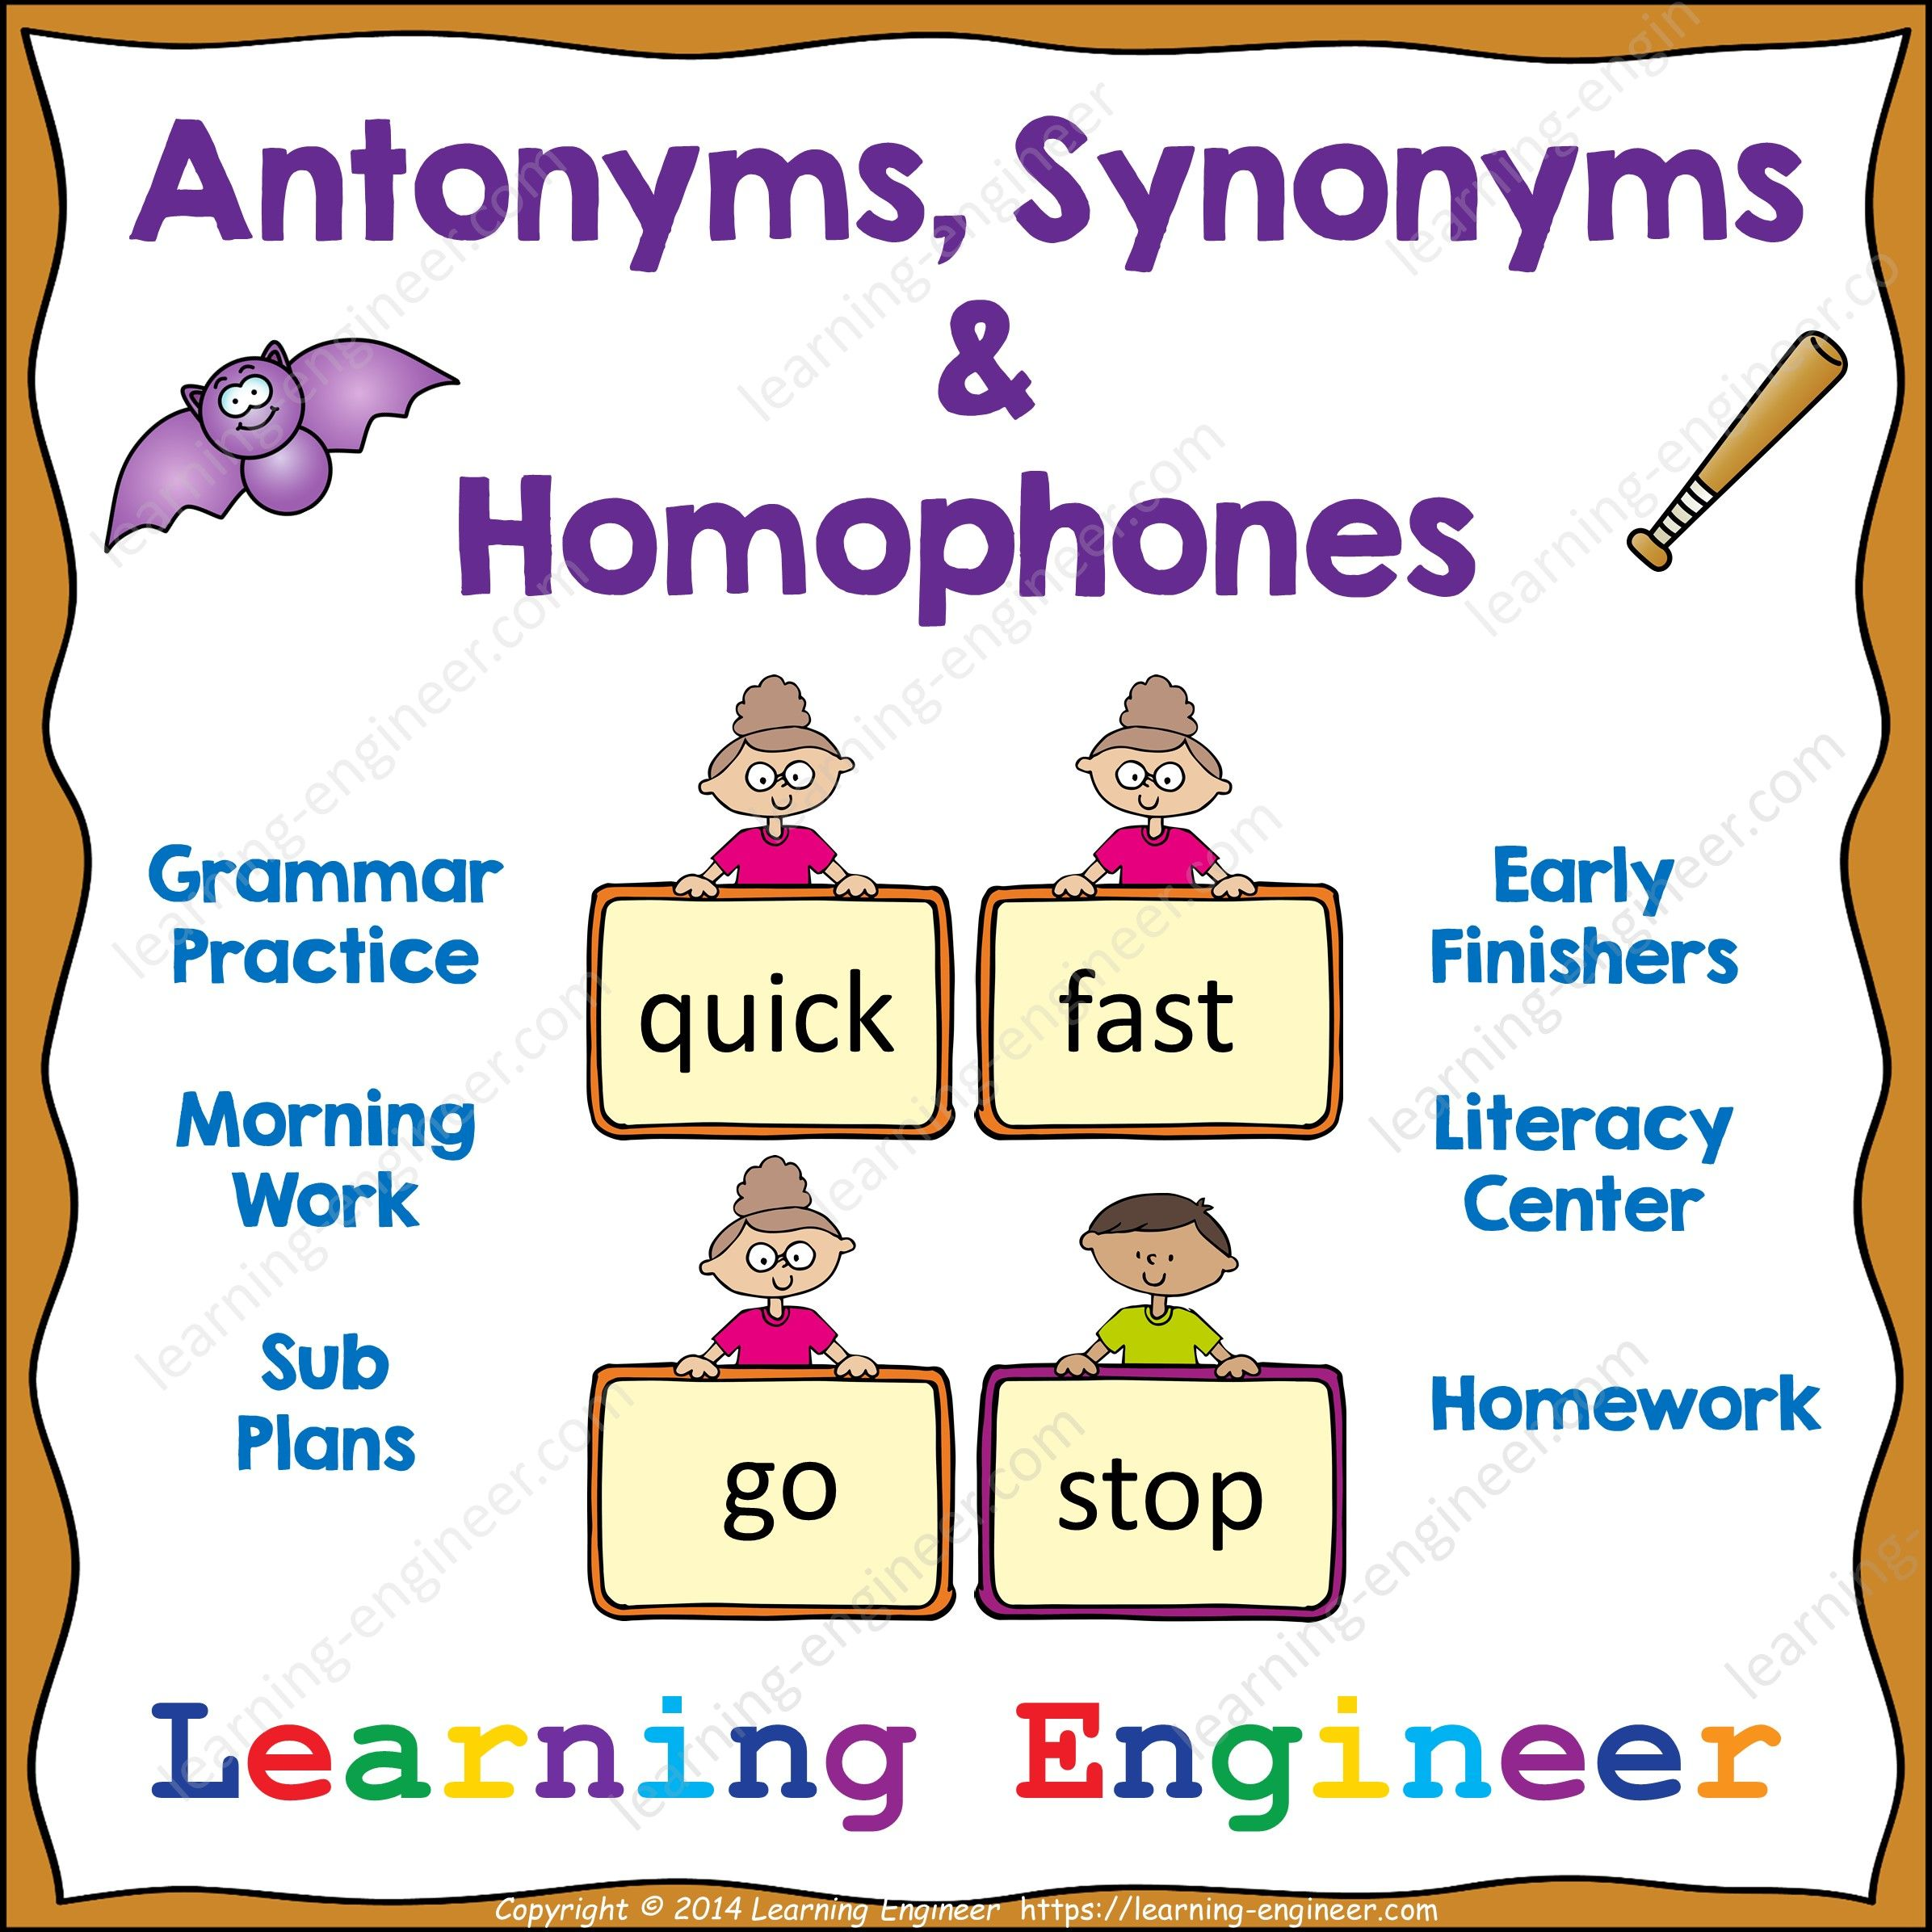 Antonyms Synonyms Homophones From Learning Engineer Antonyms